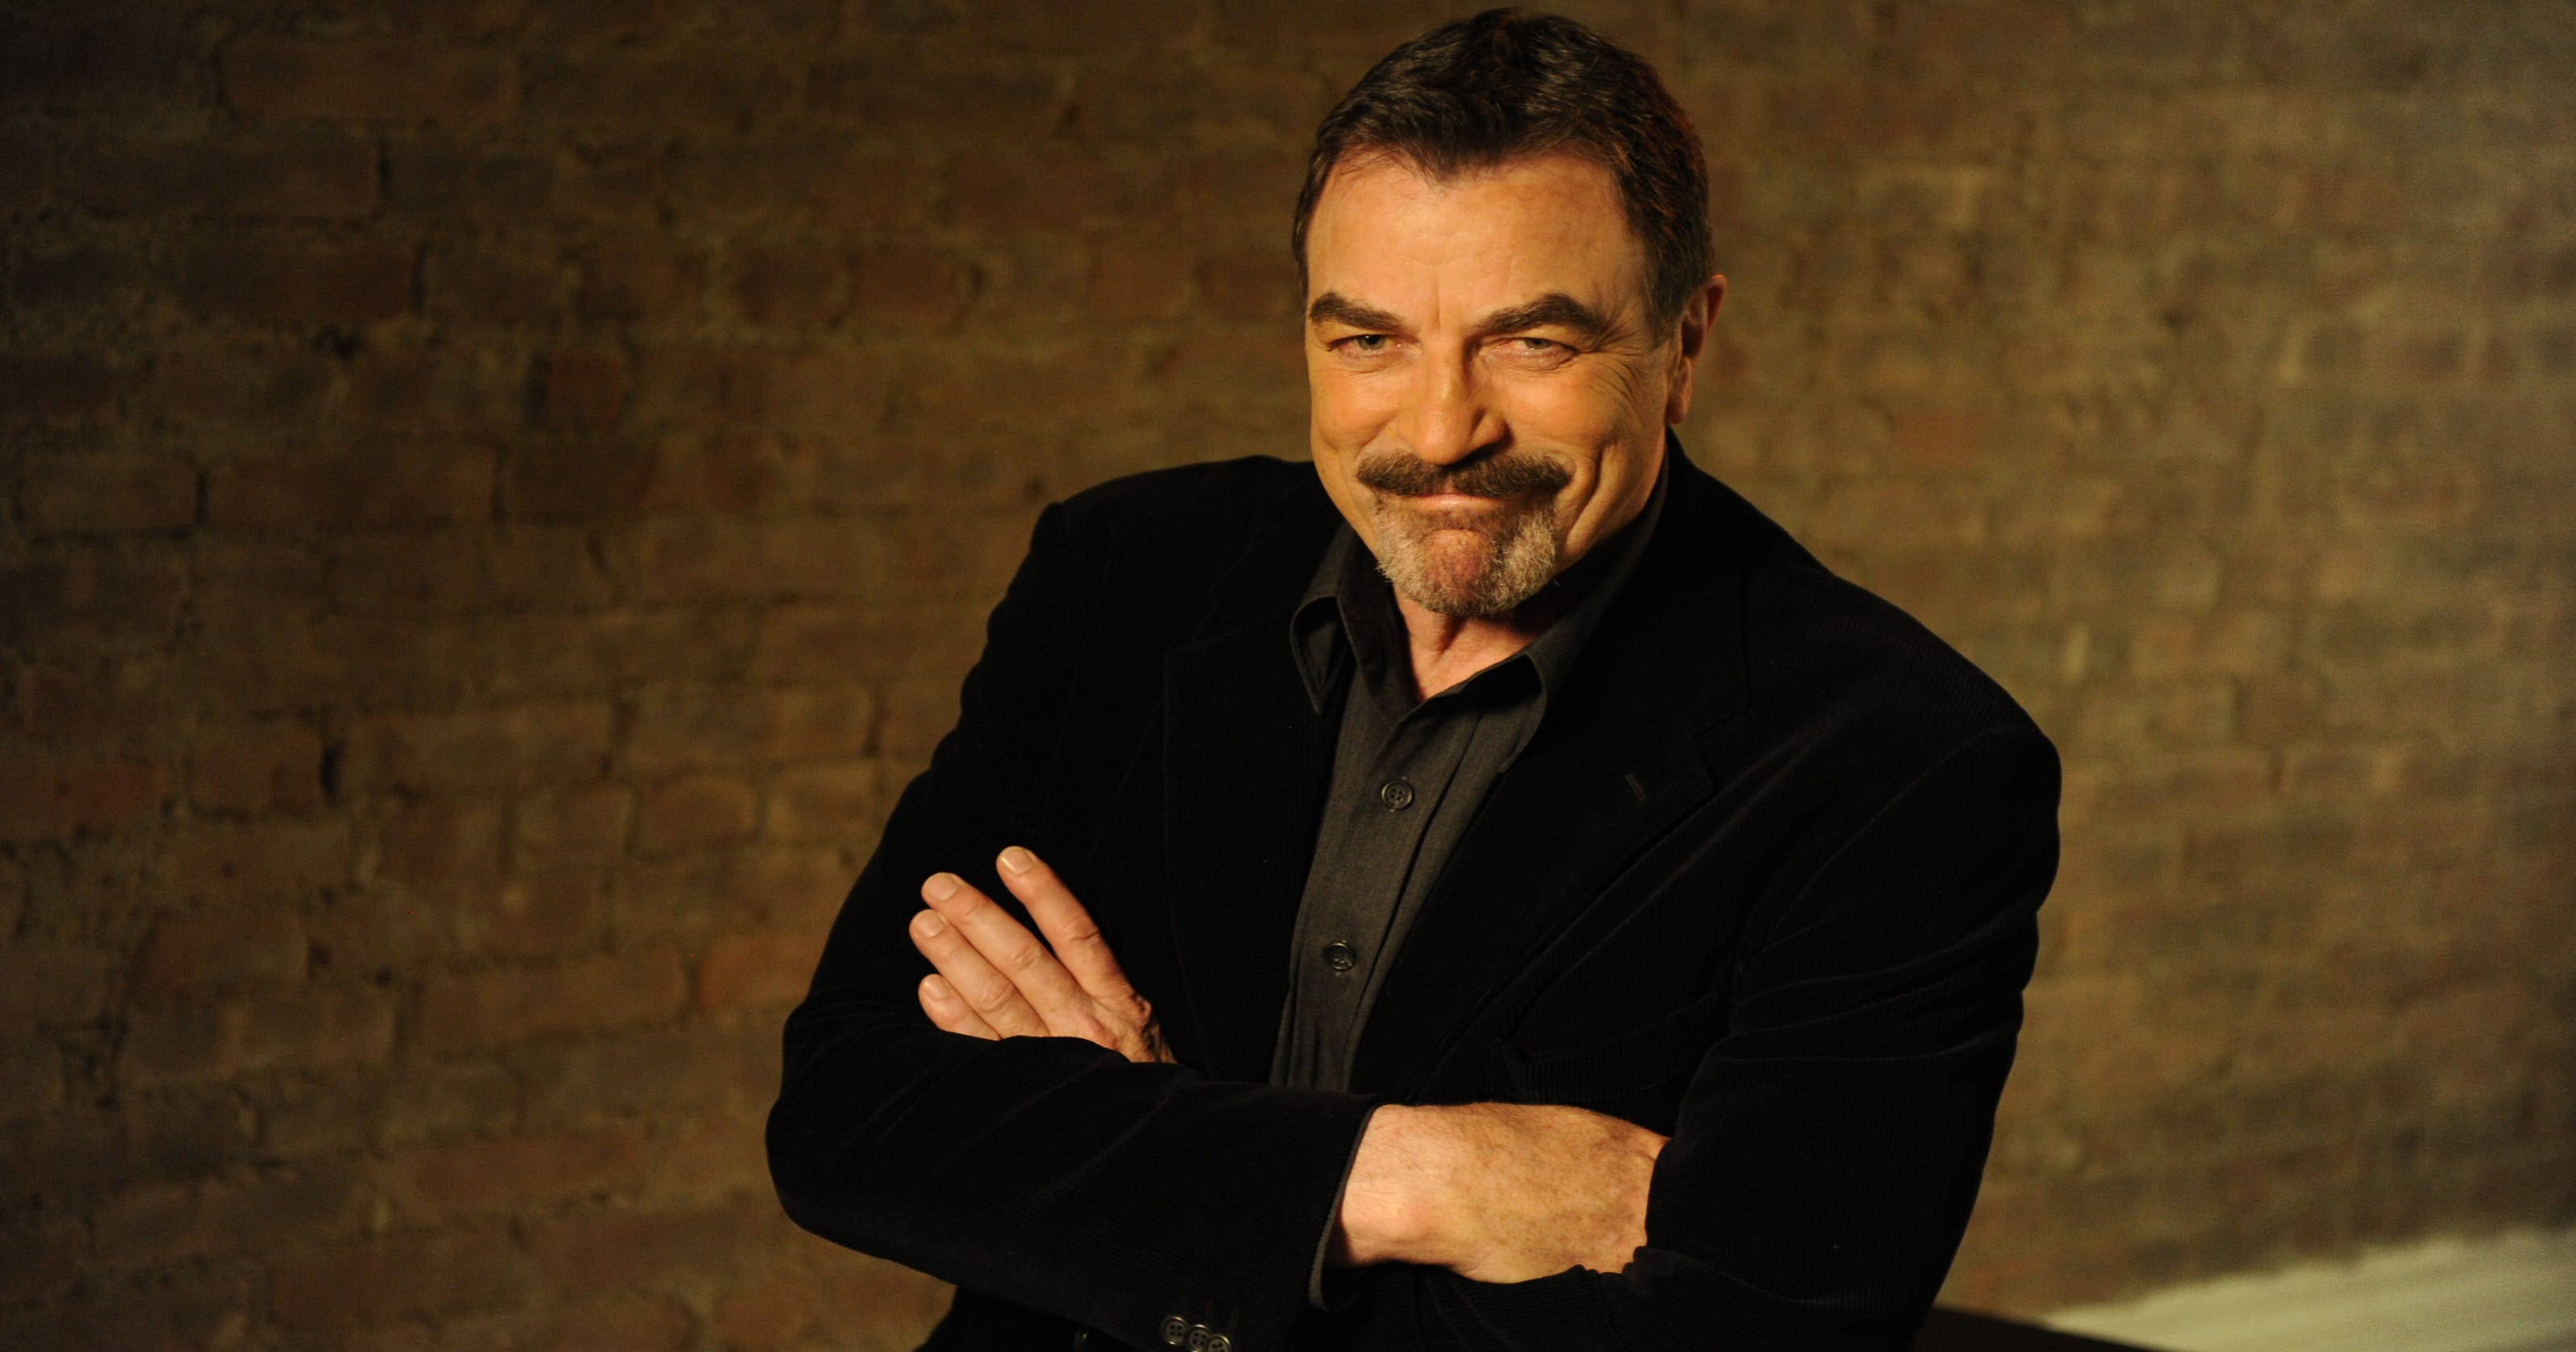 bdf685747ab79 Tom Selleck stepped down from the NRA board